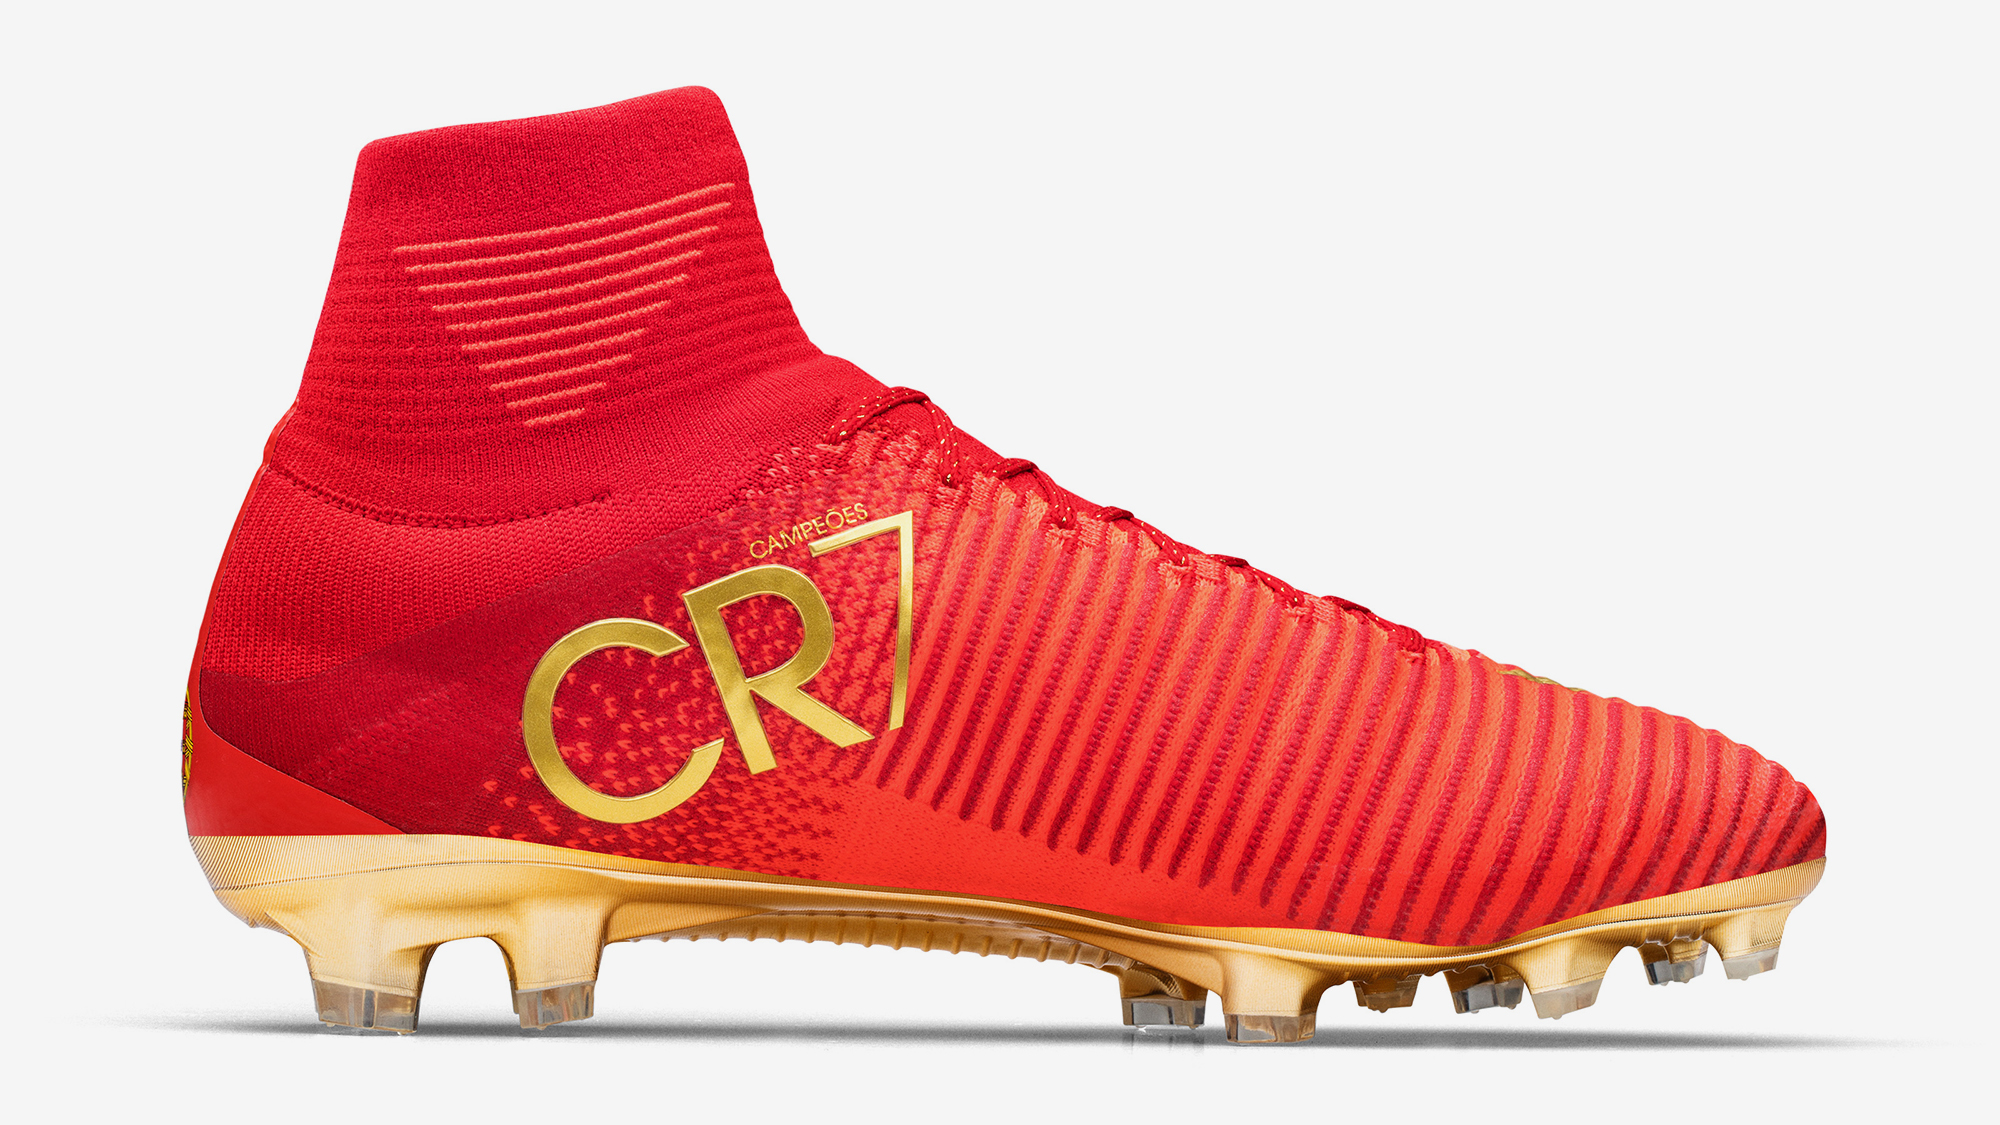 special-portugal-boots-for-cristiano-ronaldo-cr7-mercurial-campeoes4_70644